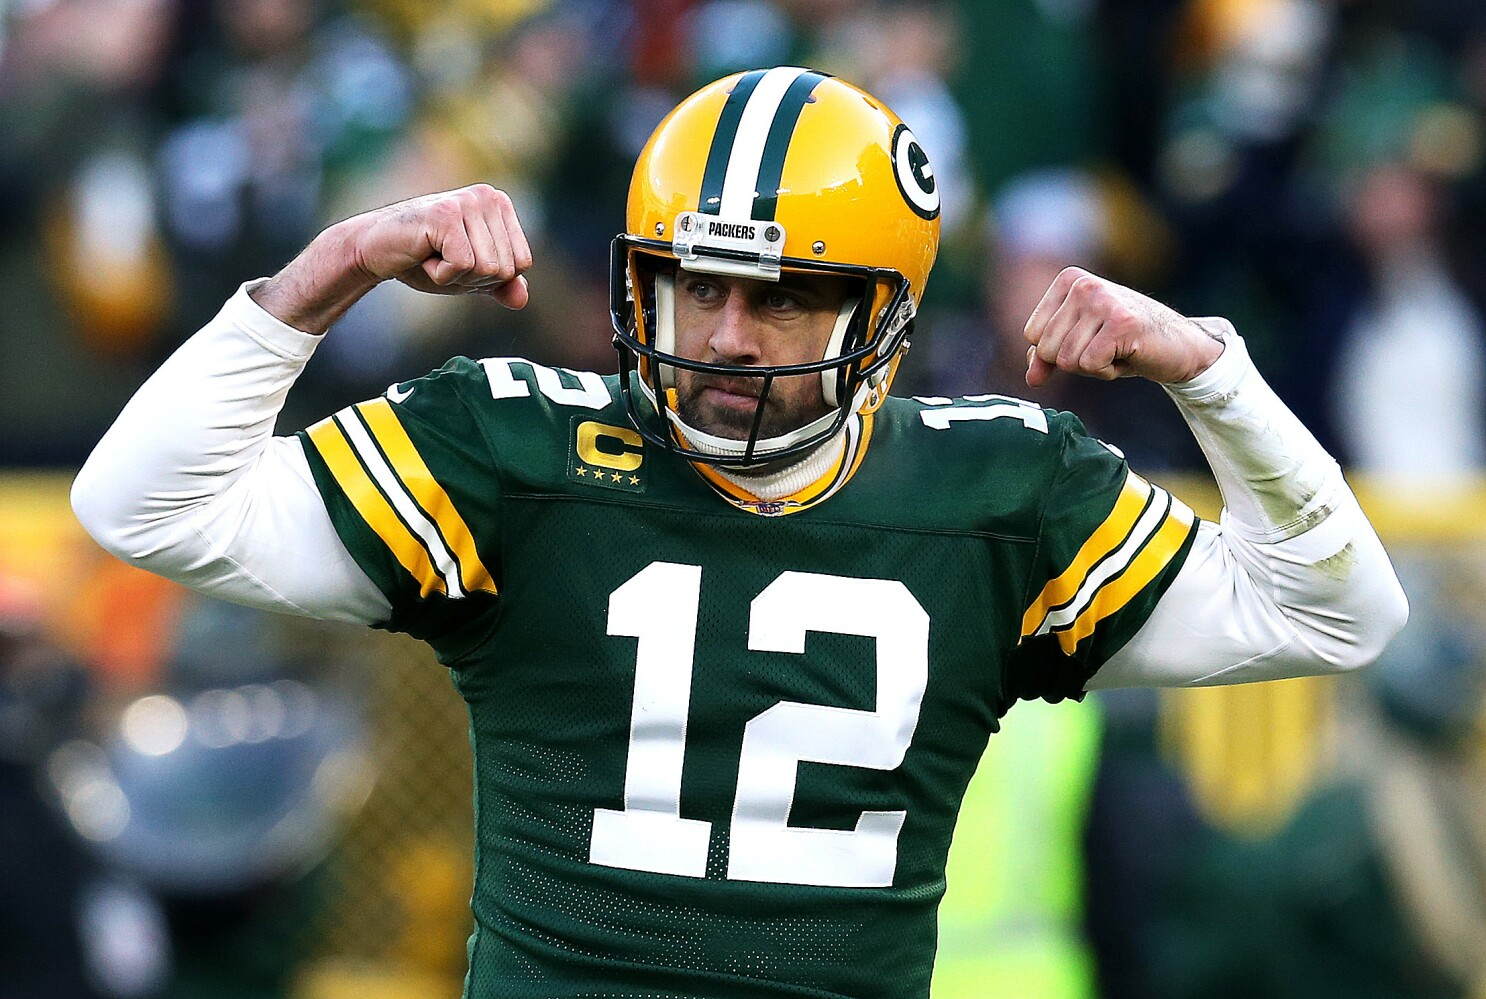 Nfc Divisional Playoff Prediction Green Bay Packers Vs Seattle Seahawks Los Angeles Times